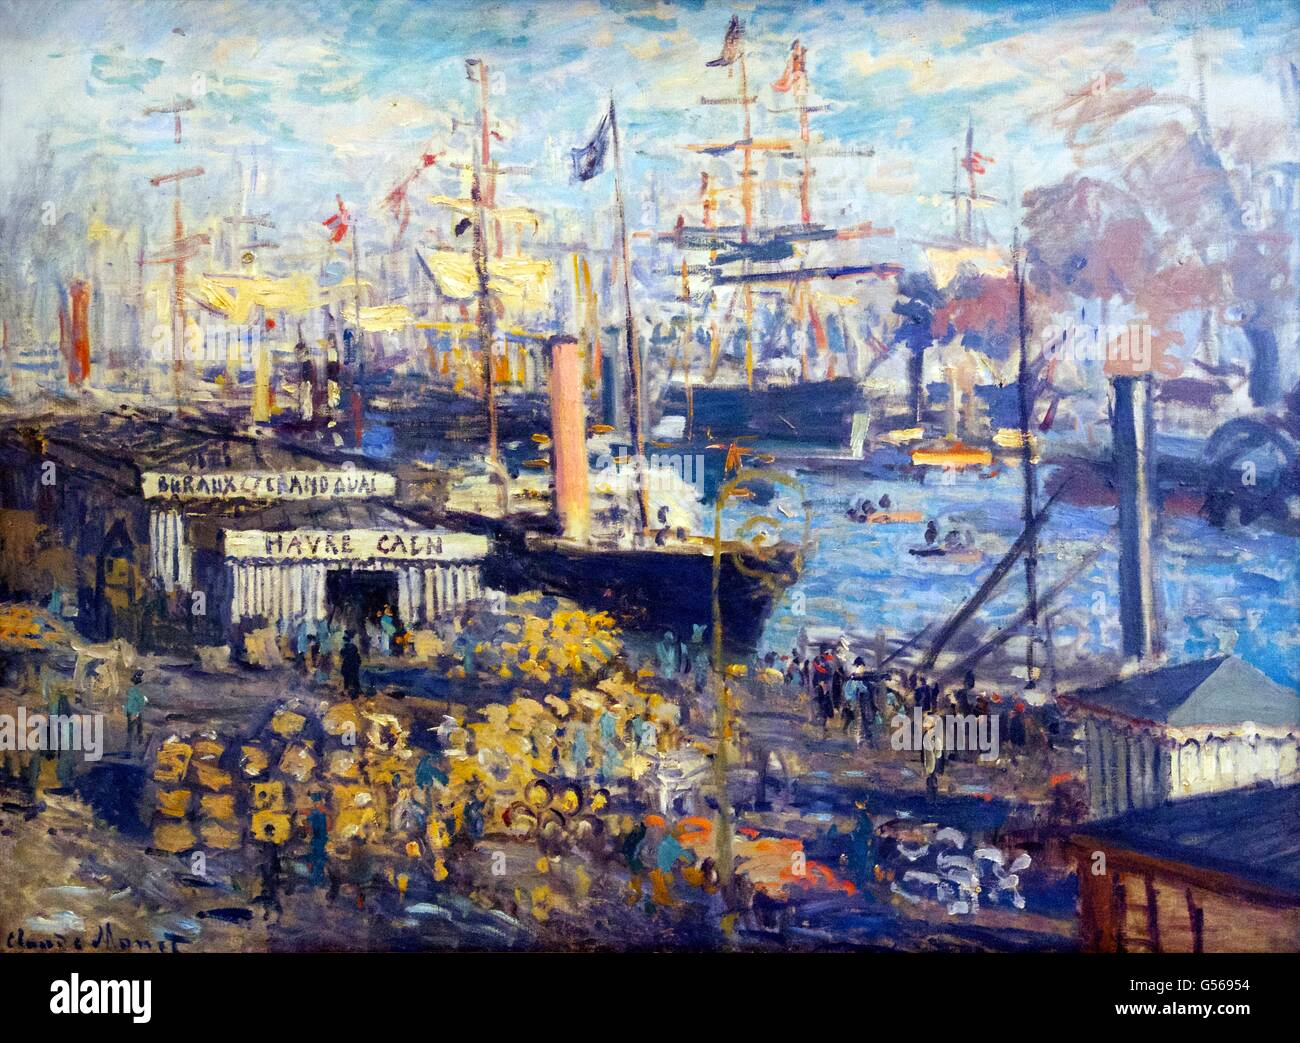 Grand Quay at Le Havre, by Claude Monet, 1874, State Hermitage Museum, Saint Petersburg, Russia - Stock Image